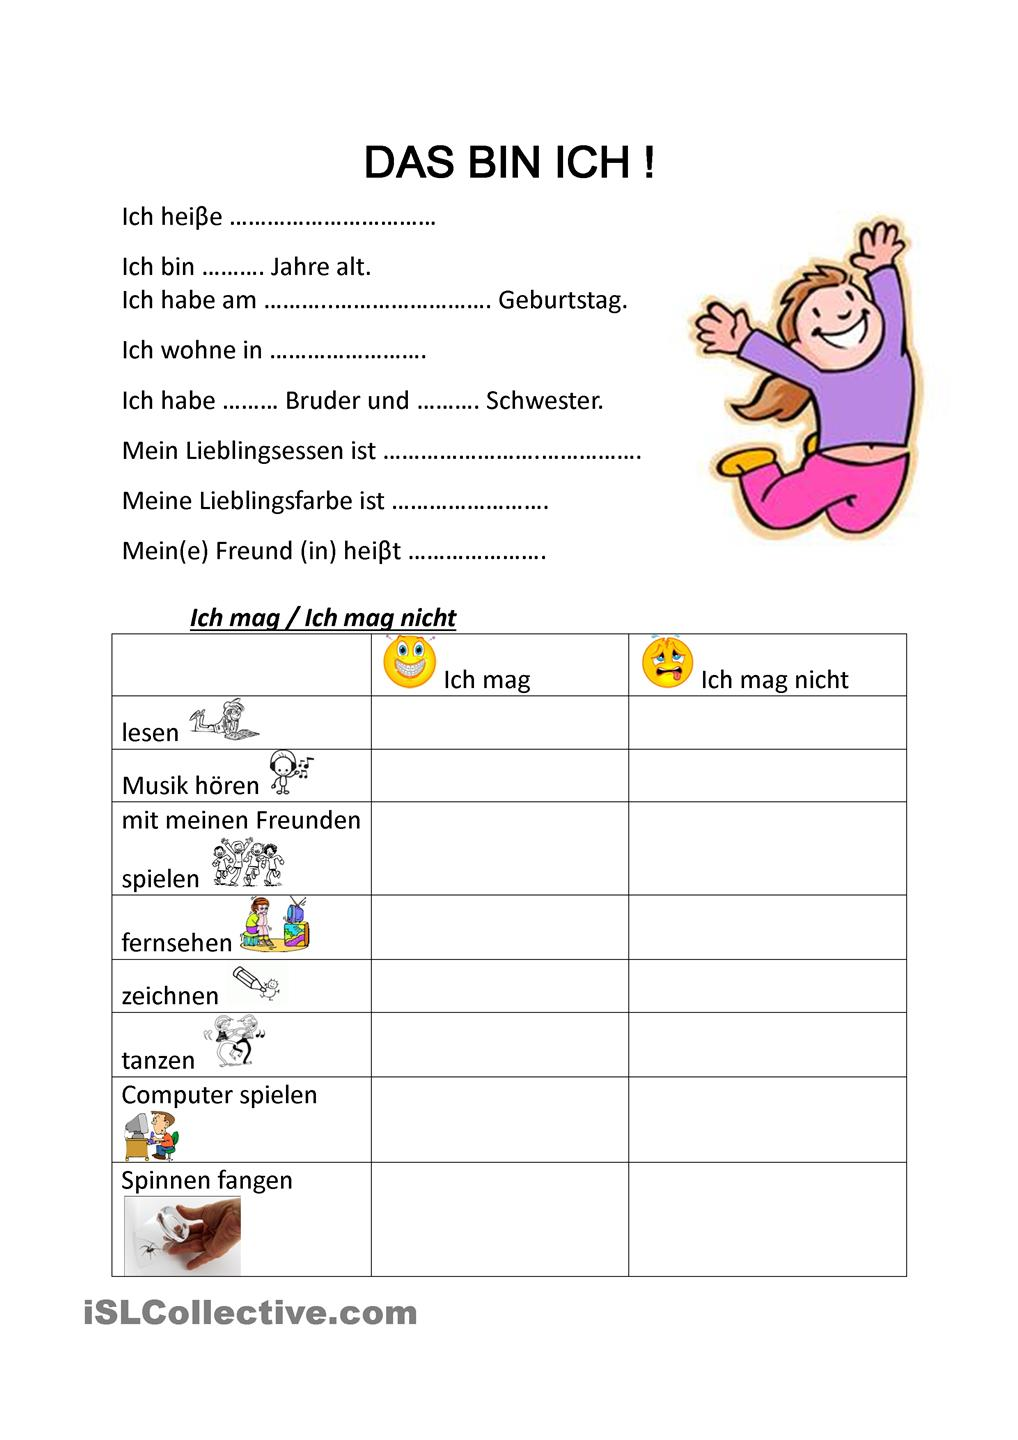 images about deutsch. Das bin ich clipart